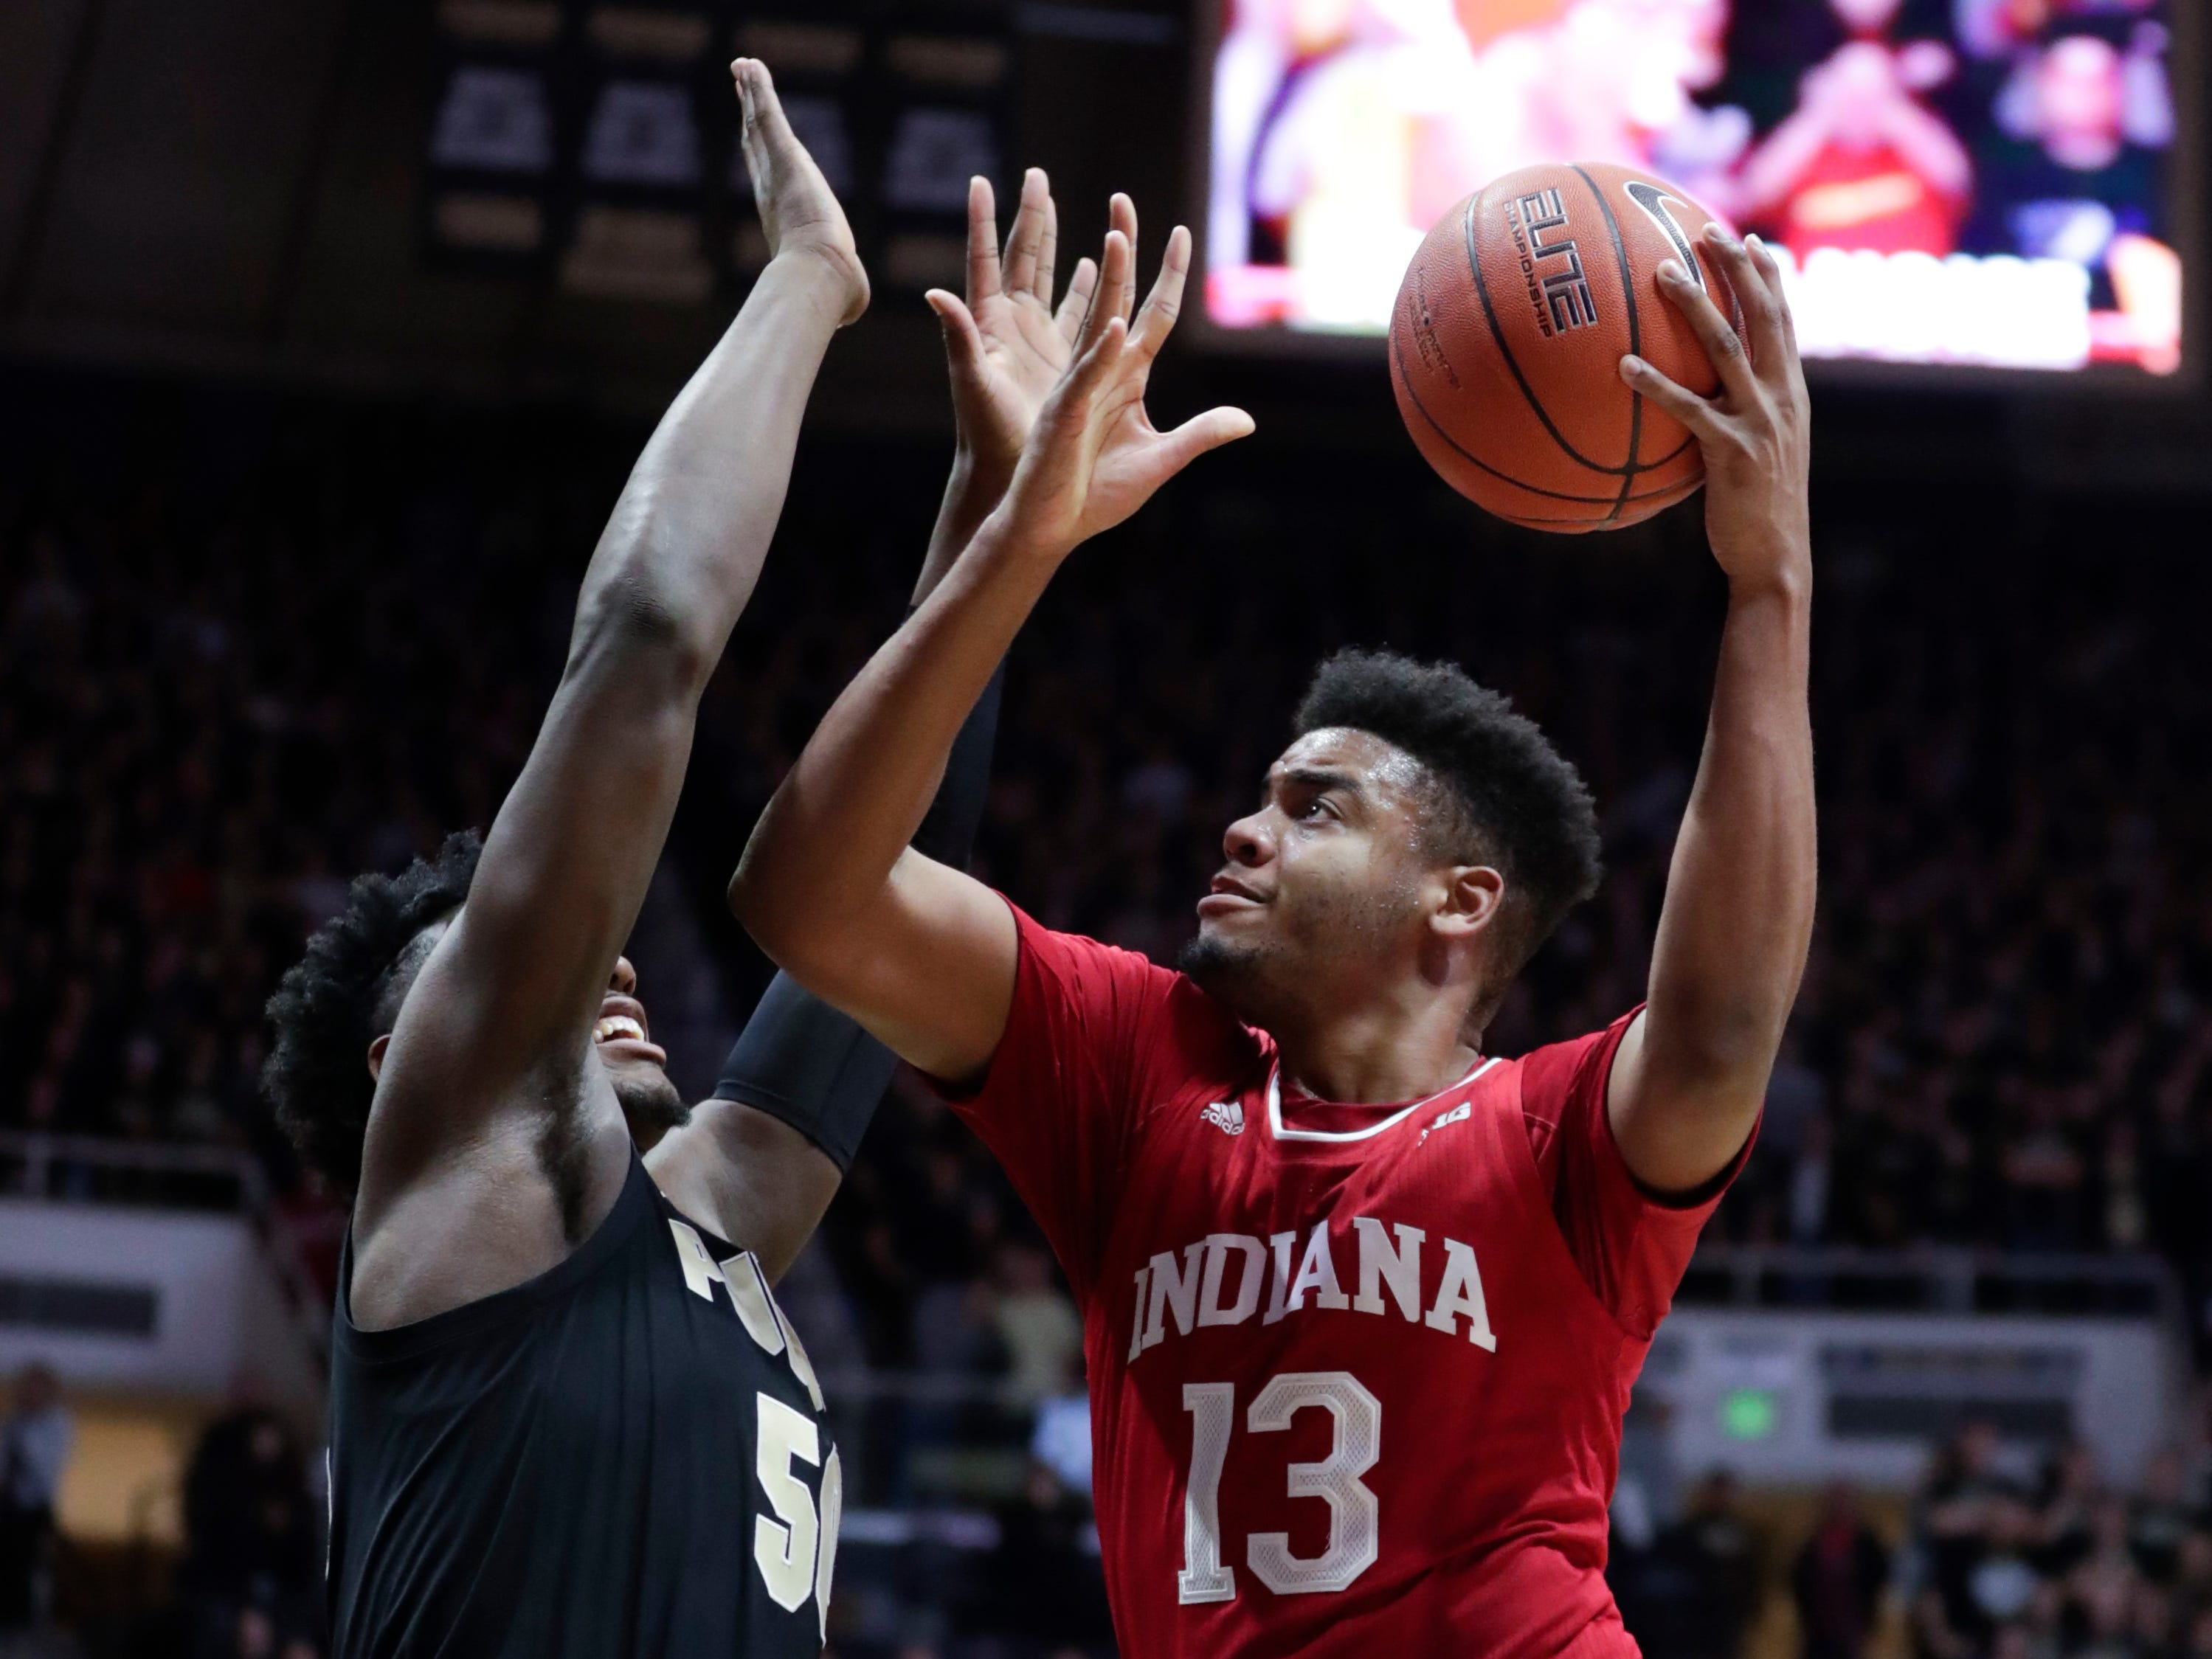 Indiana forward Juwan Morgan (13) shoots over Purdue forward Trevion Williams (50) during the first half in West Lafayette.